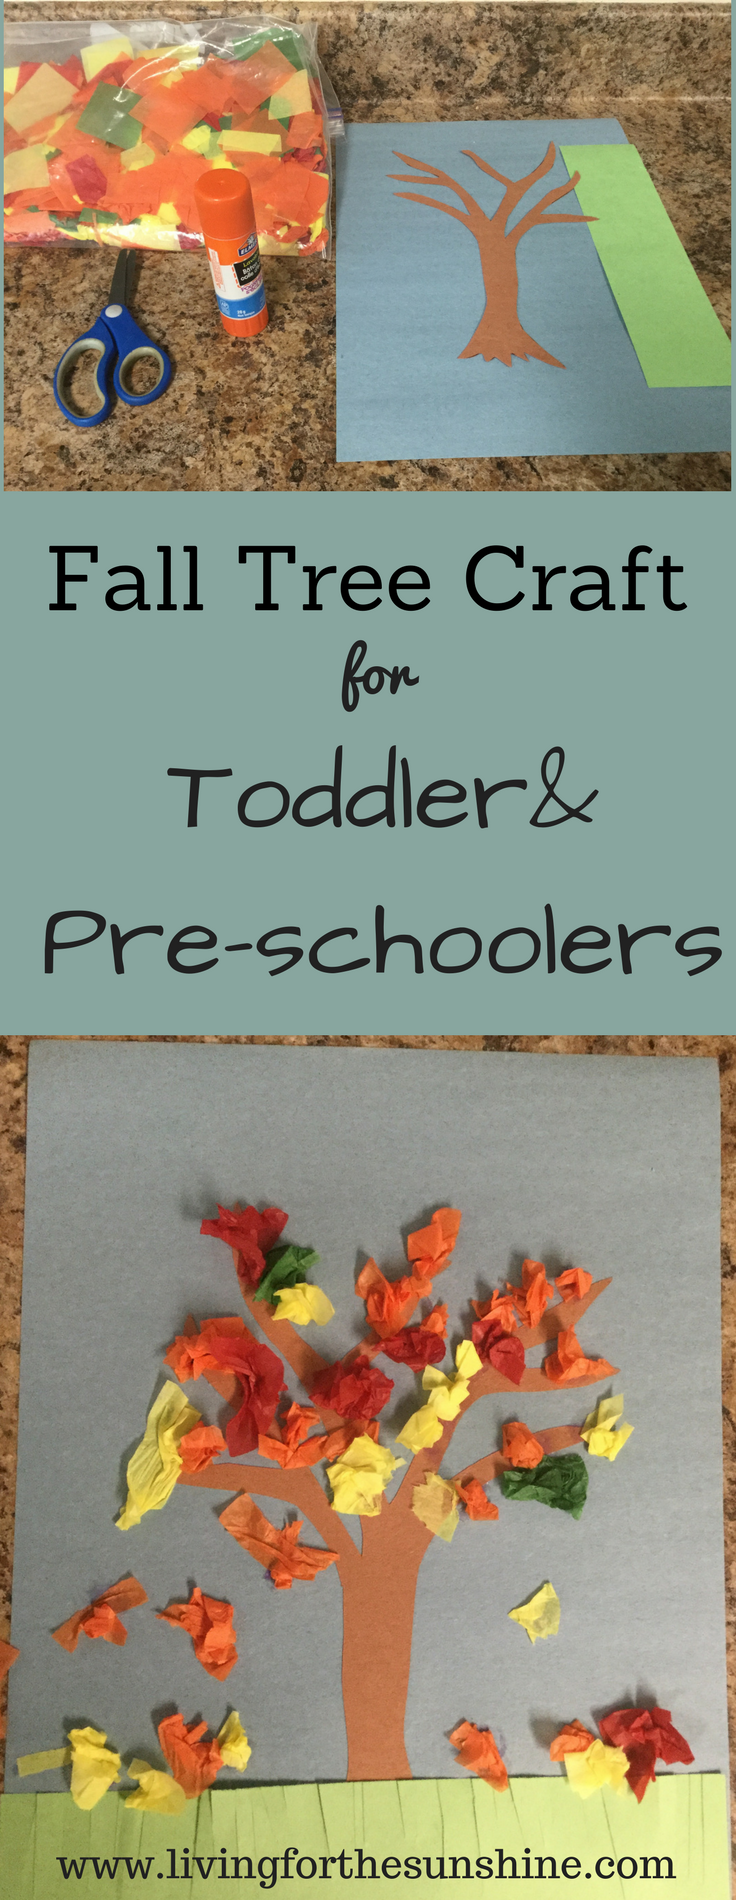 Fall Tree Craft for Preschoolers #toddlercrafts